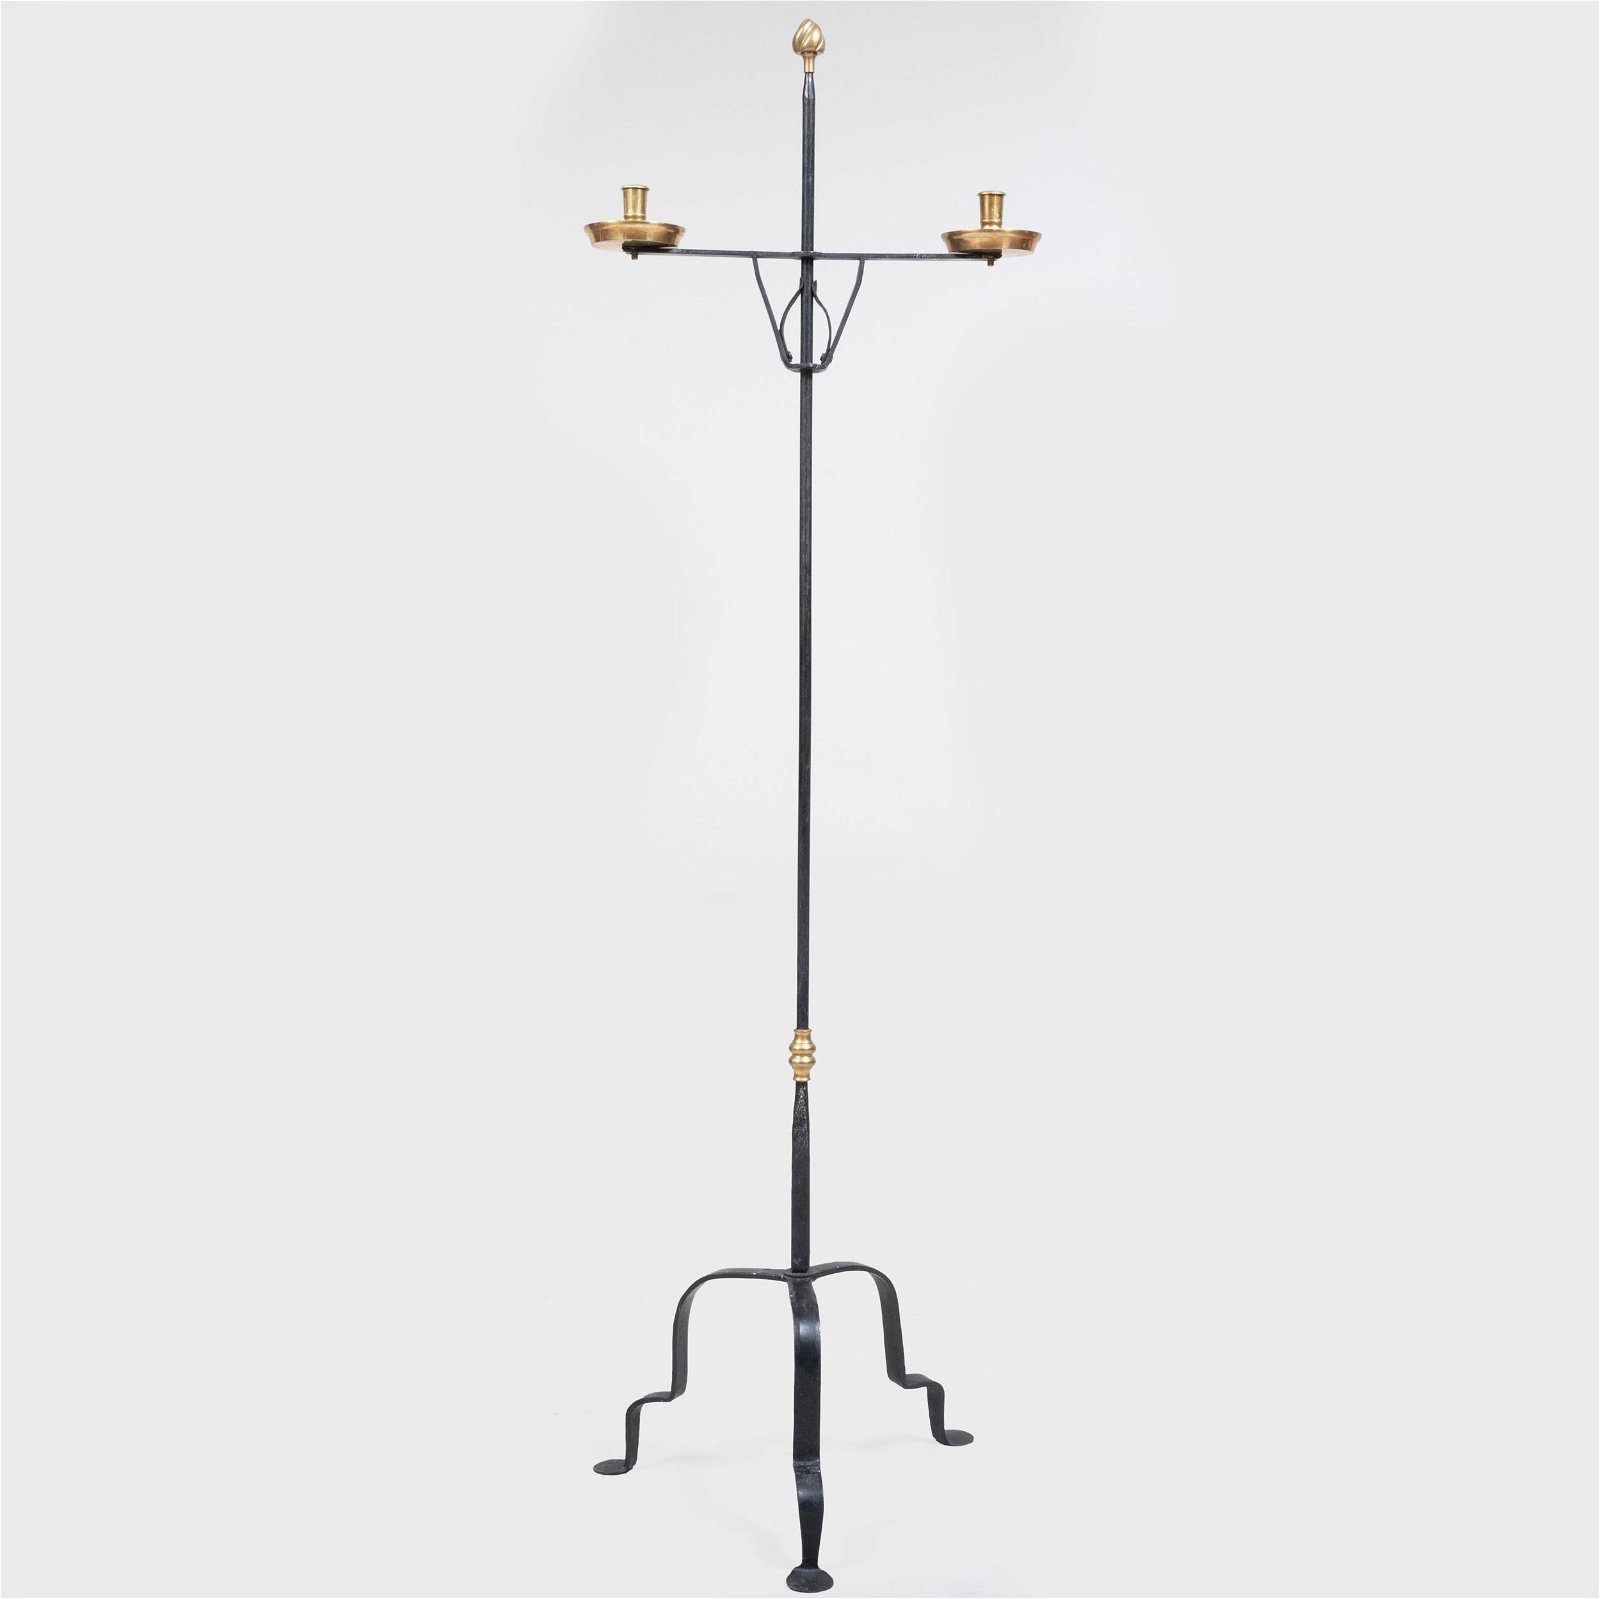 Brass and Wrought-Iron Two-Light Candlestand